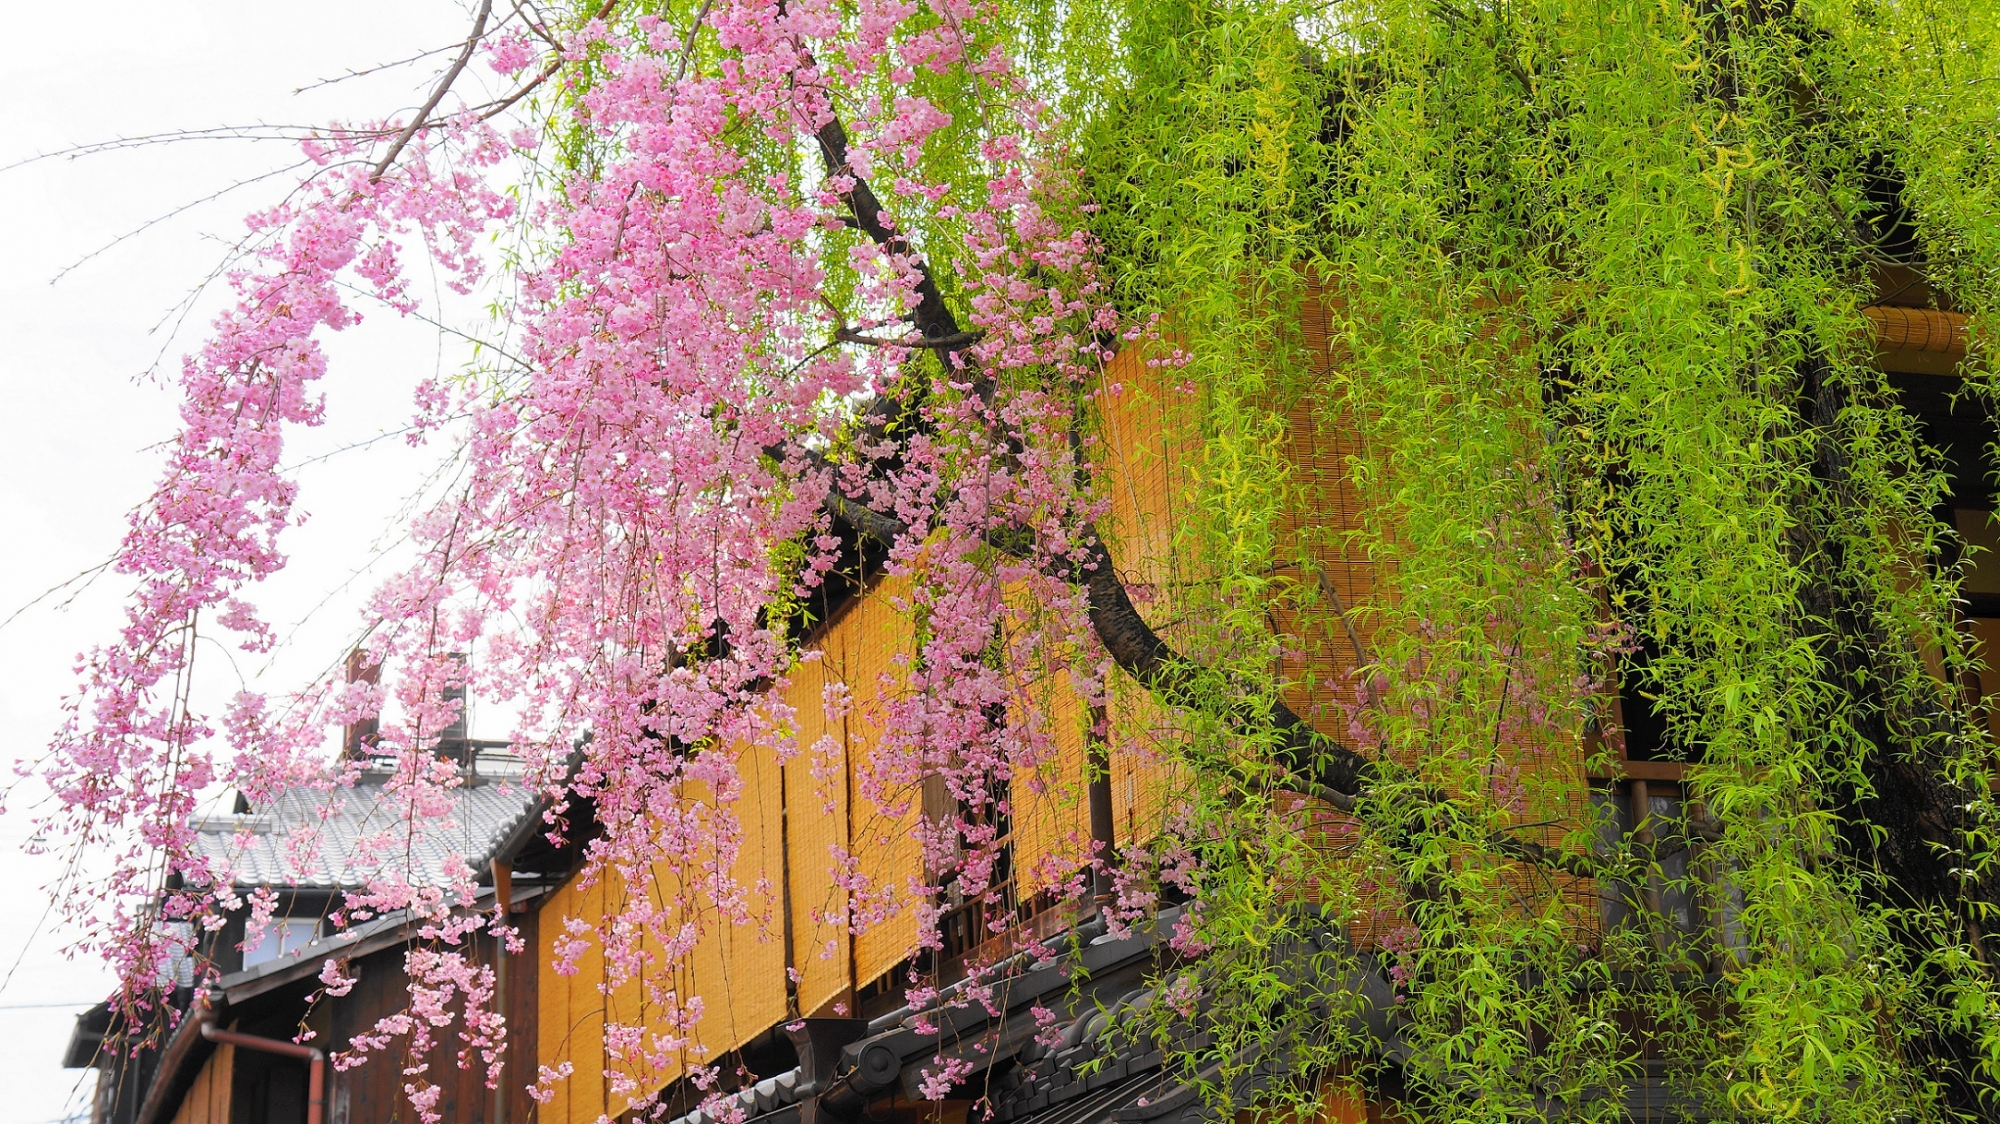 Kyoto Gion Shirakawa weeping cherry tree spring ぎおんしらかわ 桜 柳